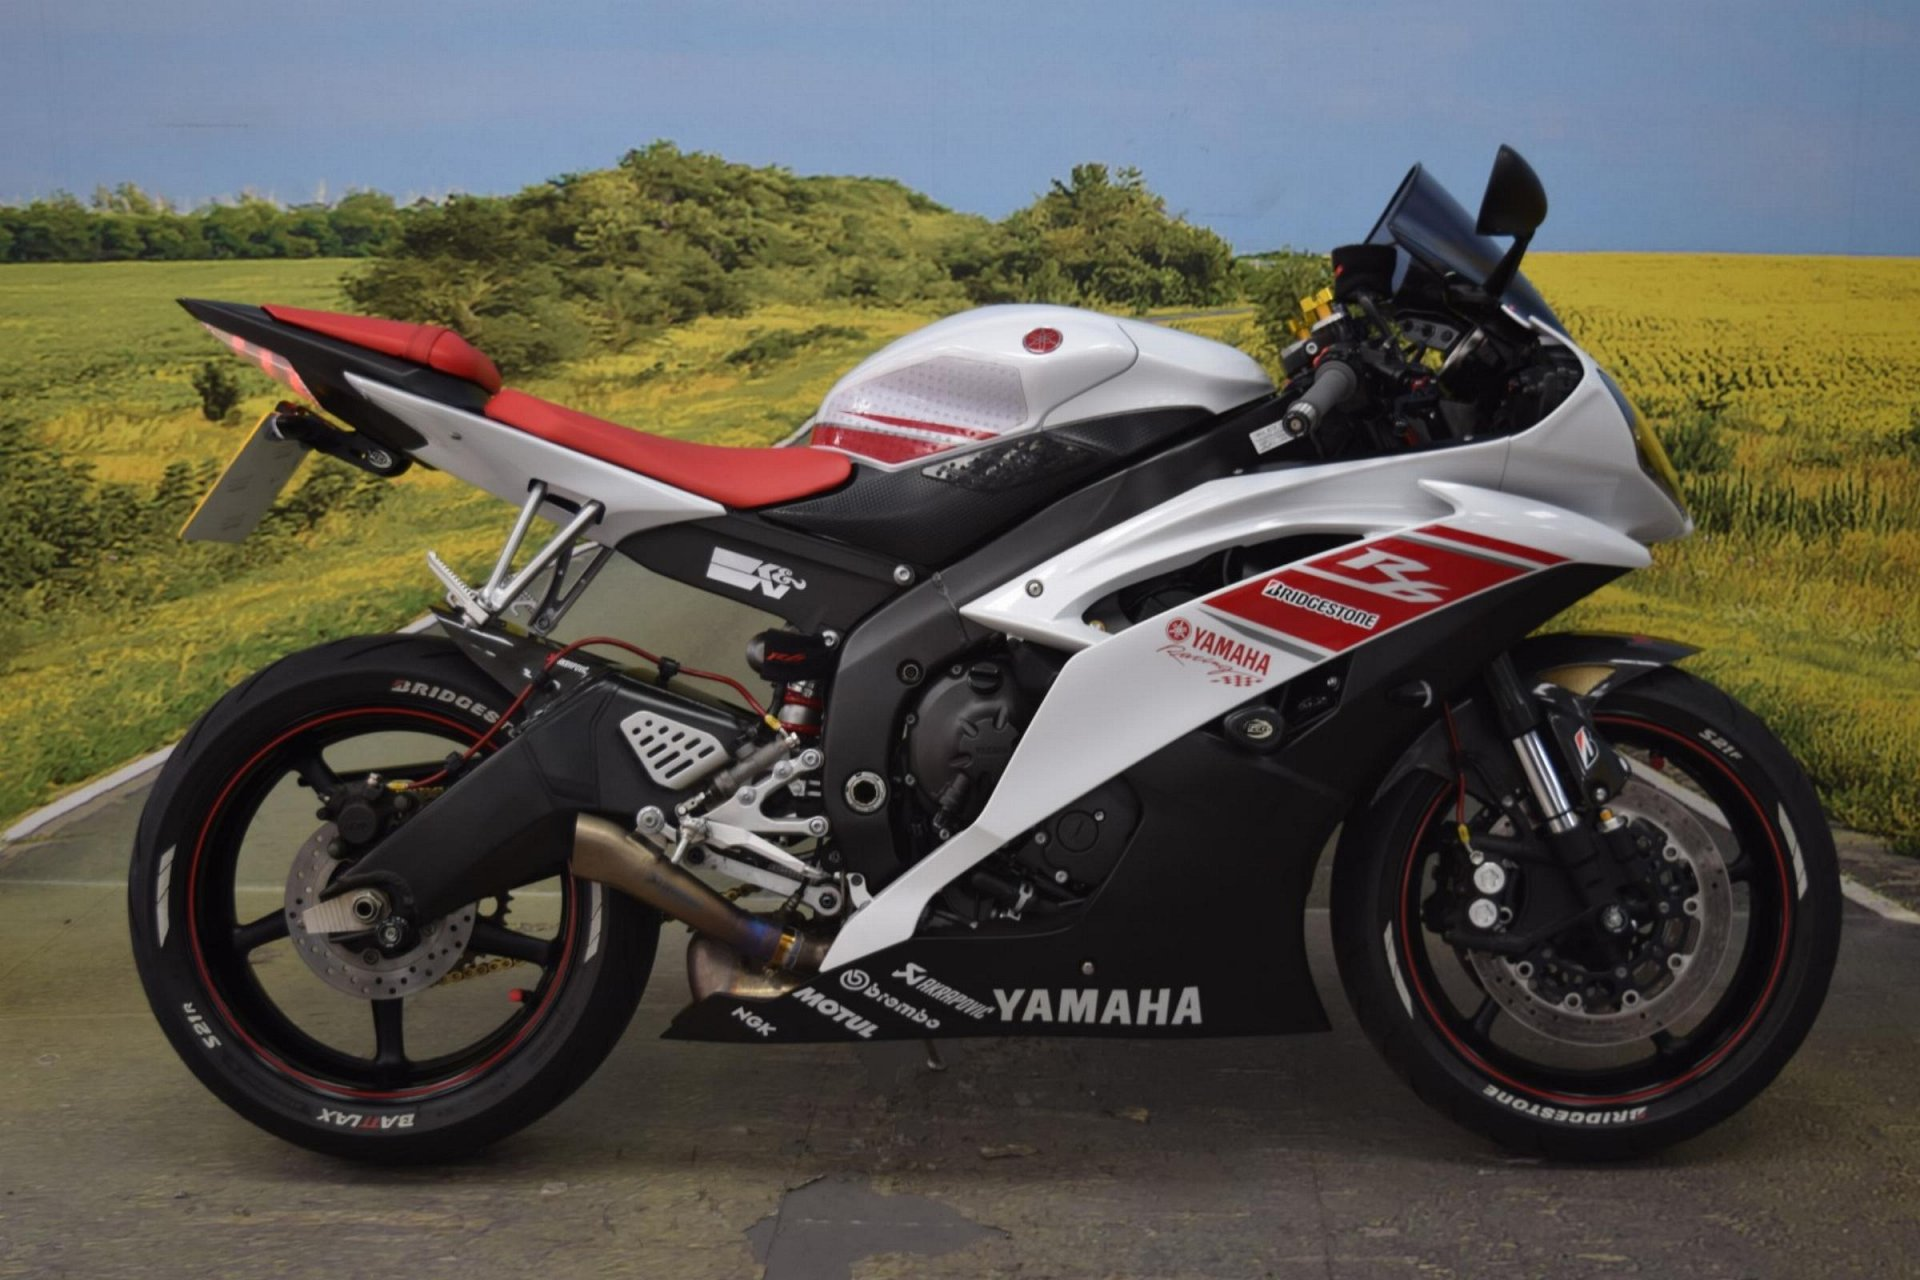 2008 Yamaha YZF R6 for sale in Staffordshire